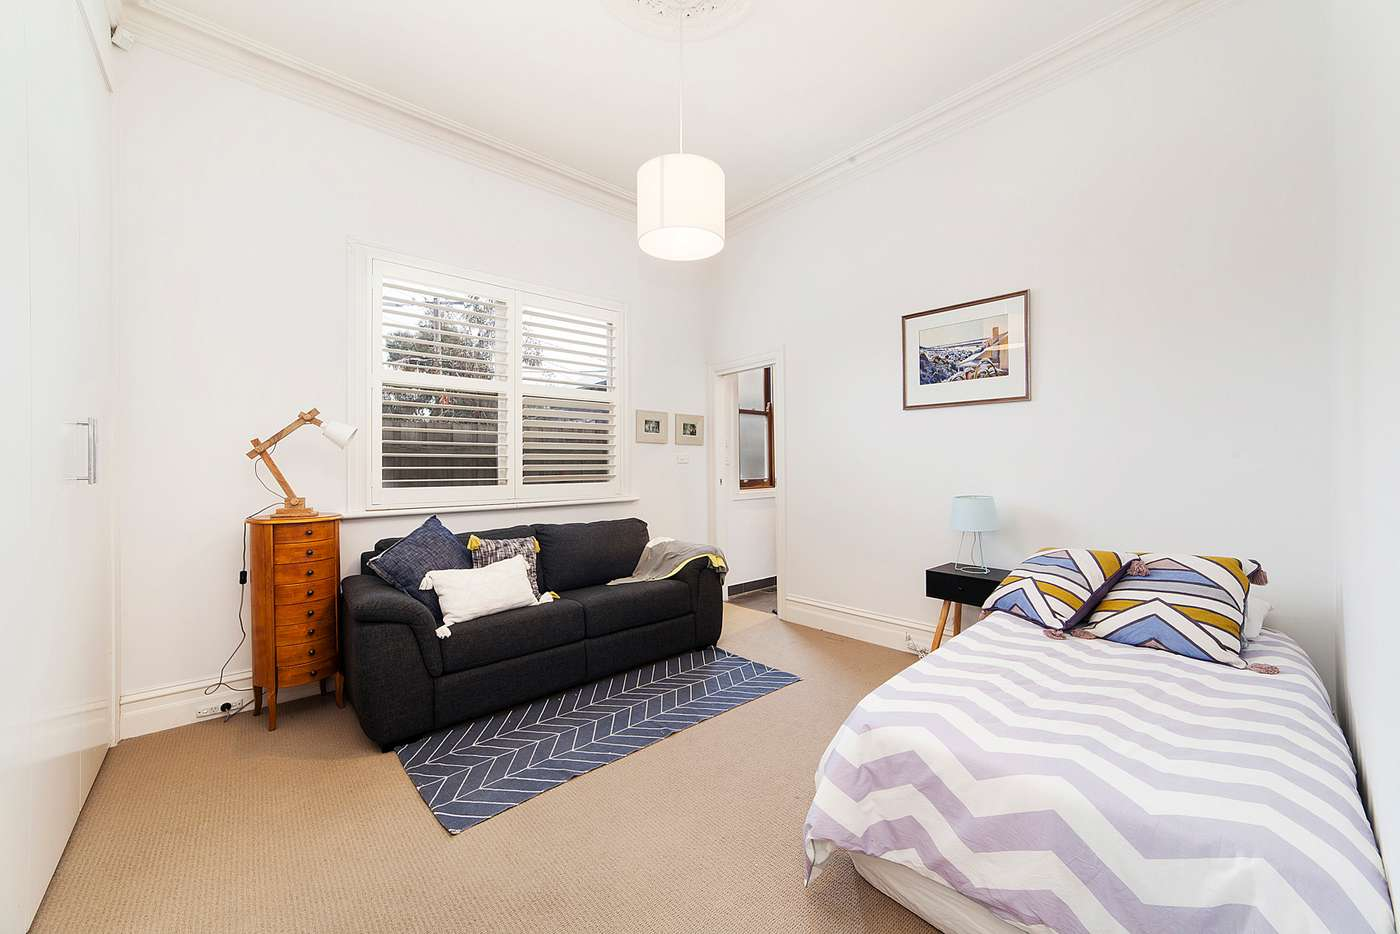 Fifth view of Homely house listing, 96 Pentland Parade, Yarraville VIC 3013